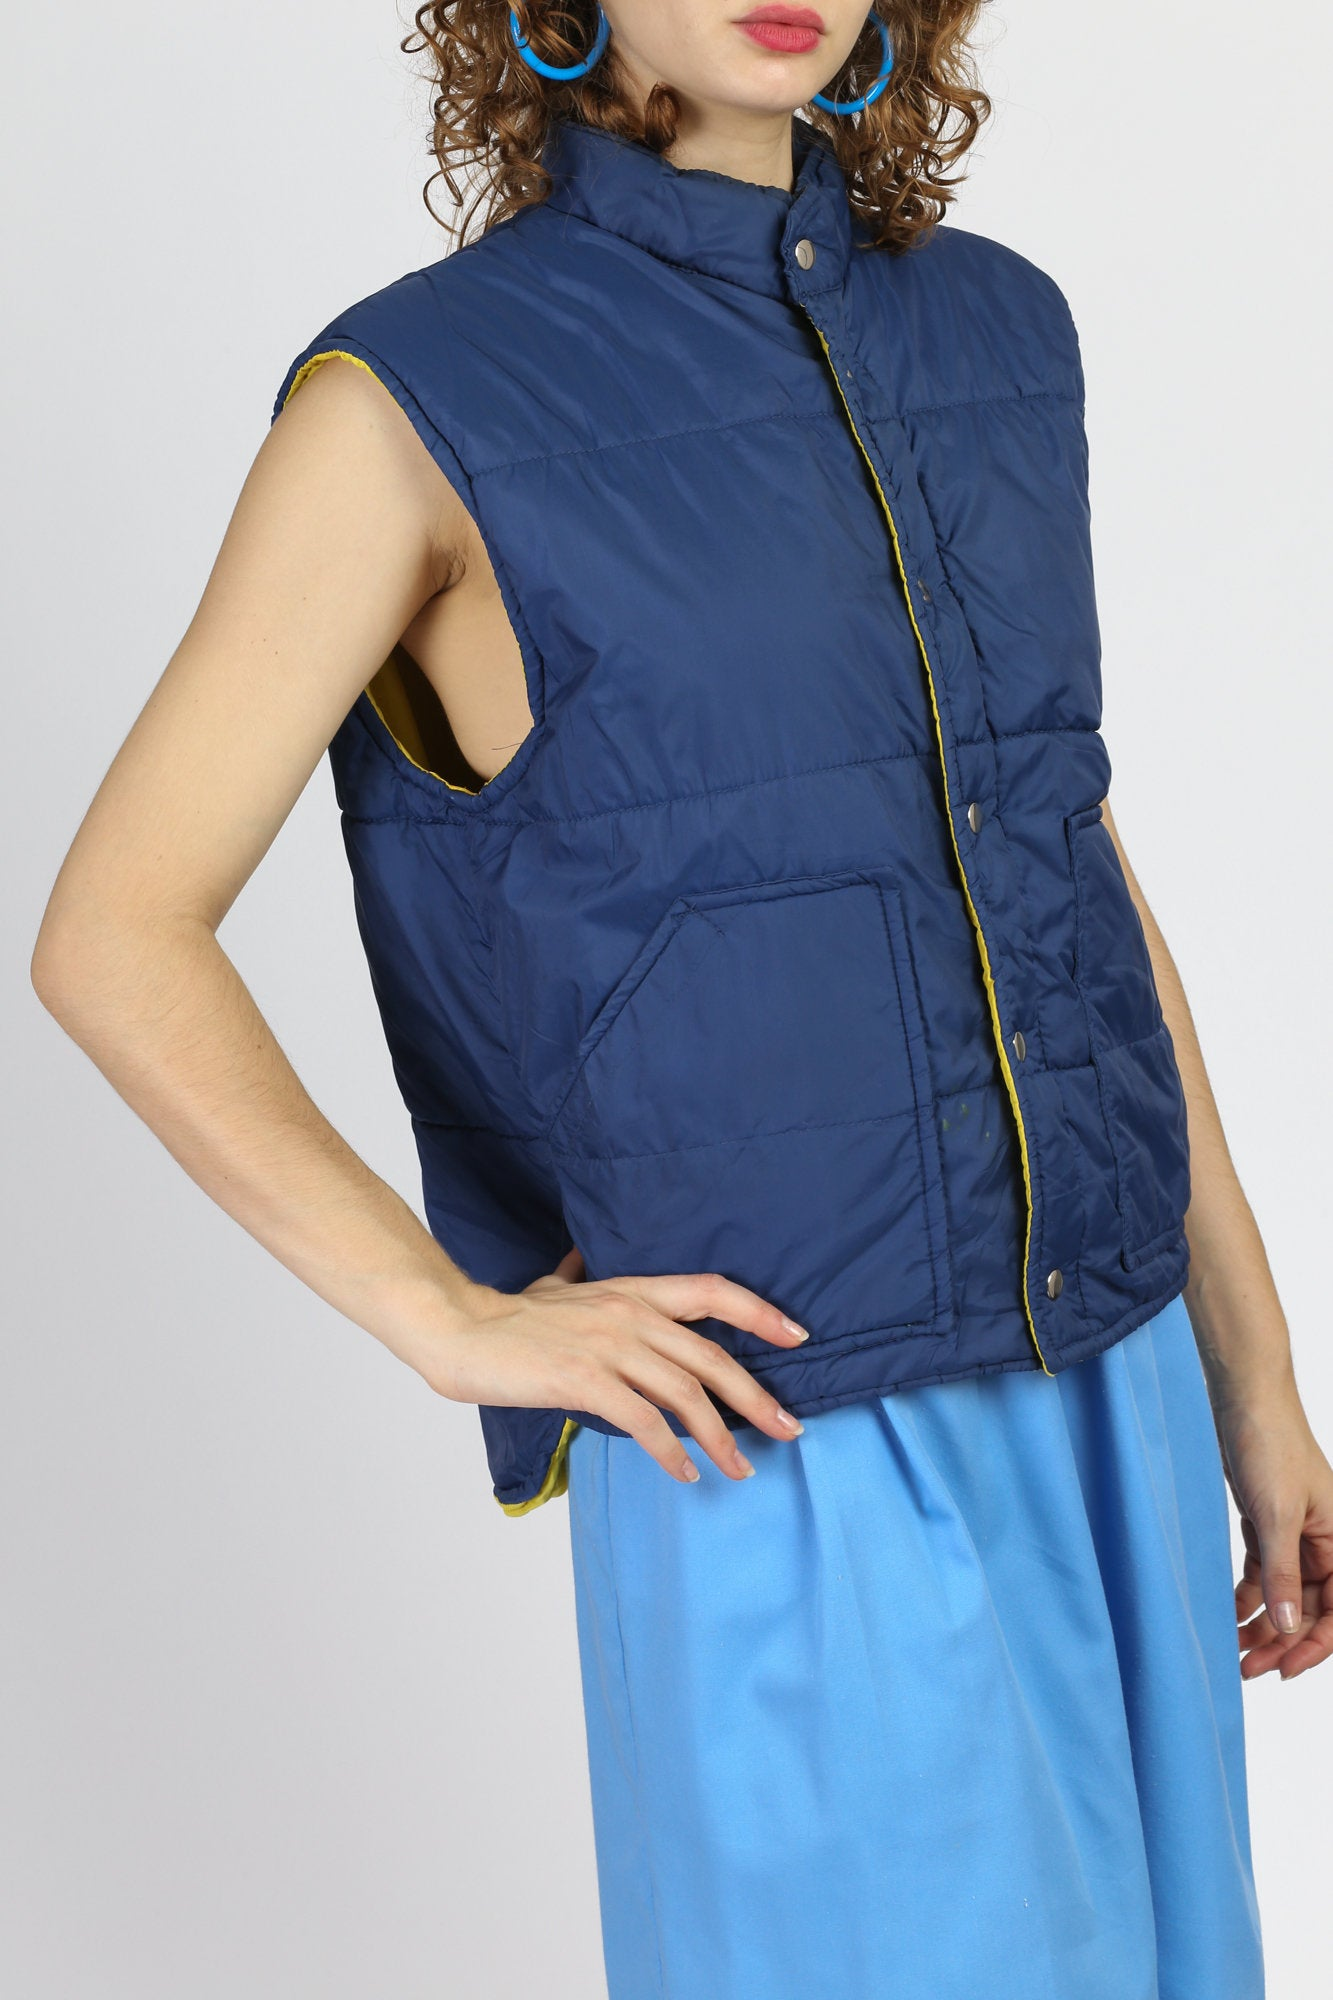 70s Blue Puffer Vest - Men's Medium, Women's Large